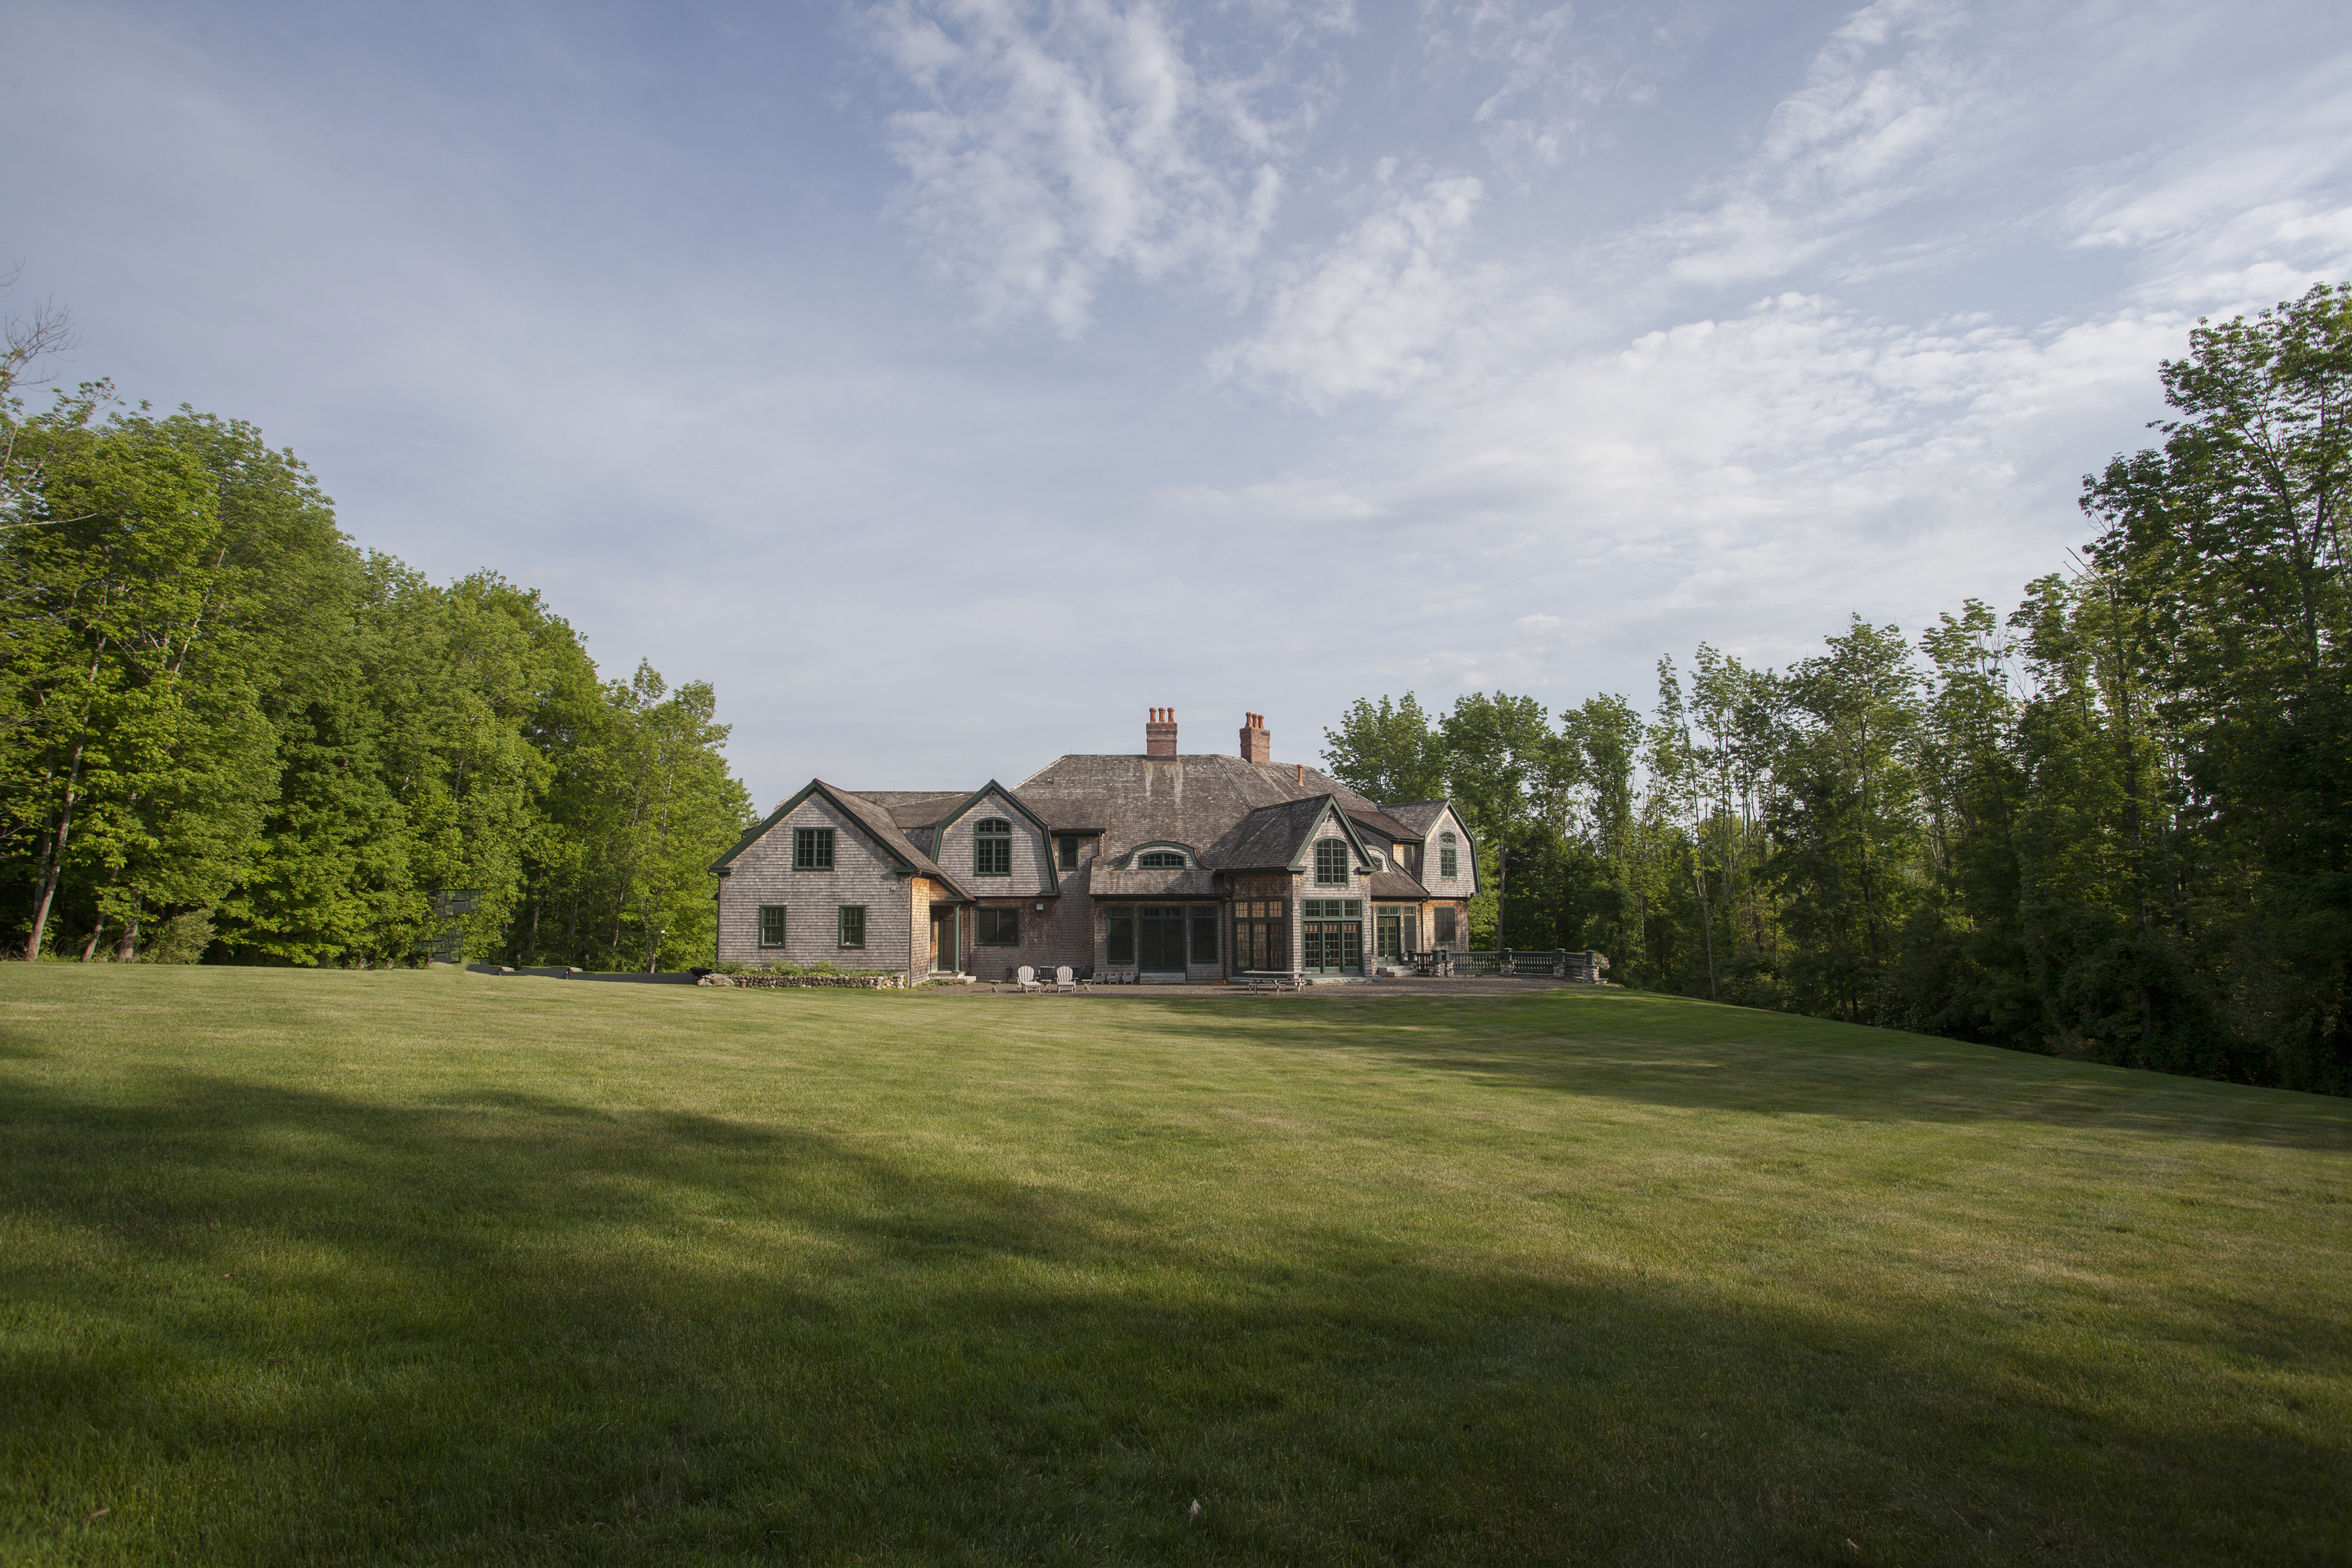 Single Family Home for Sale at Luxurious Shingle Style Home 15 Woodside Circle Woodbury, Connecticut 06798 United States